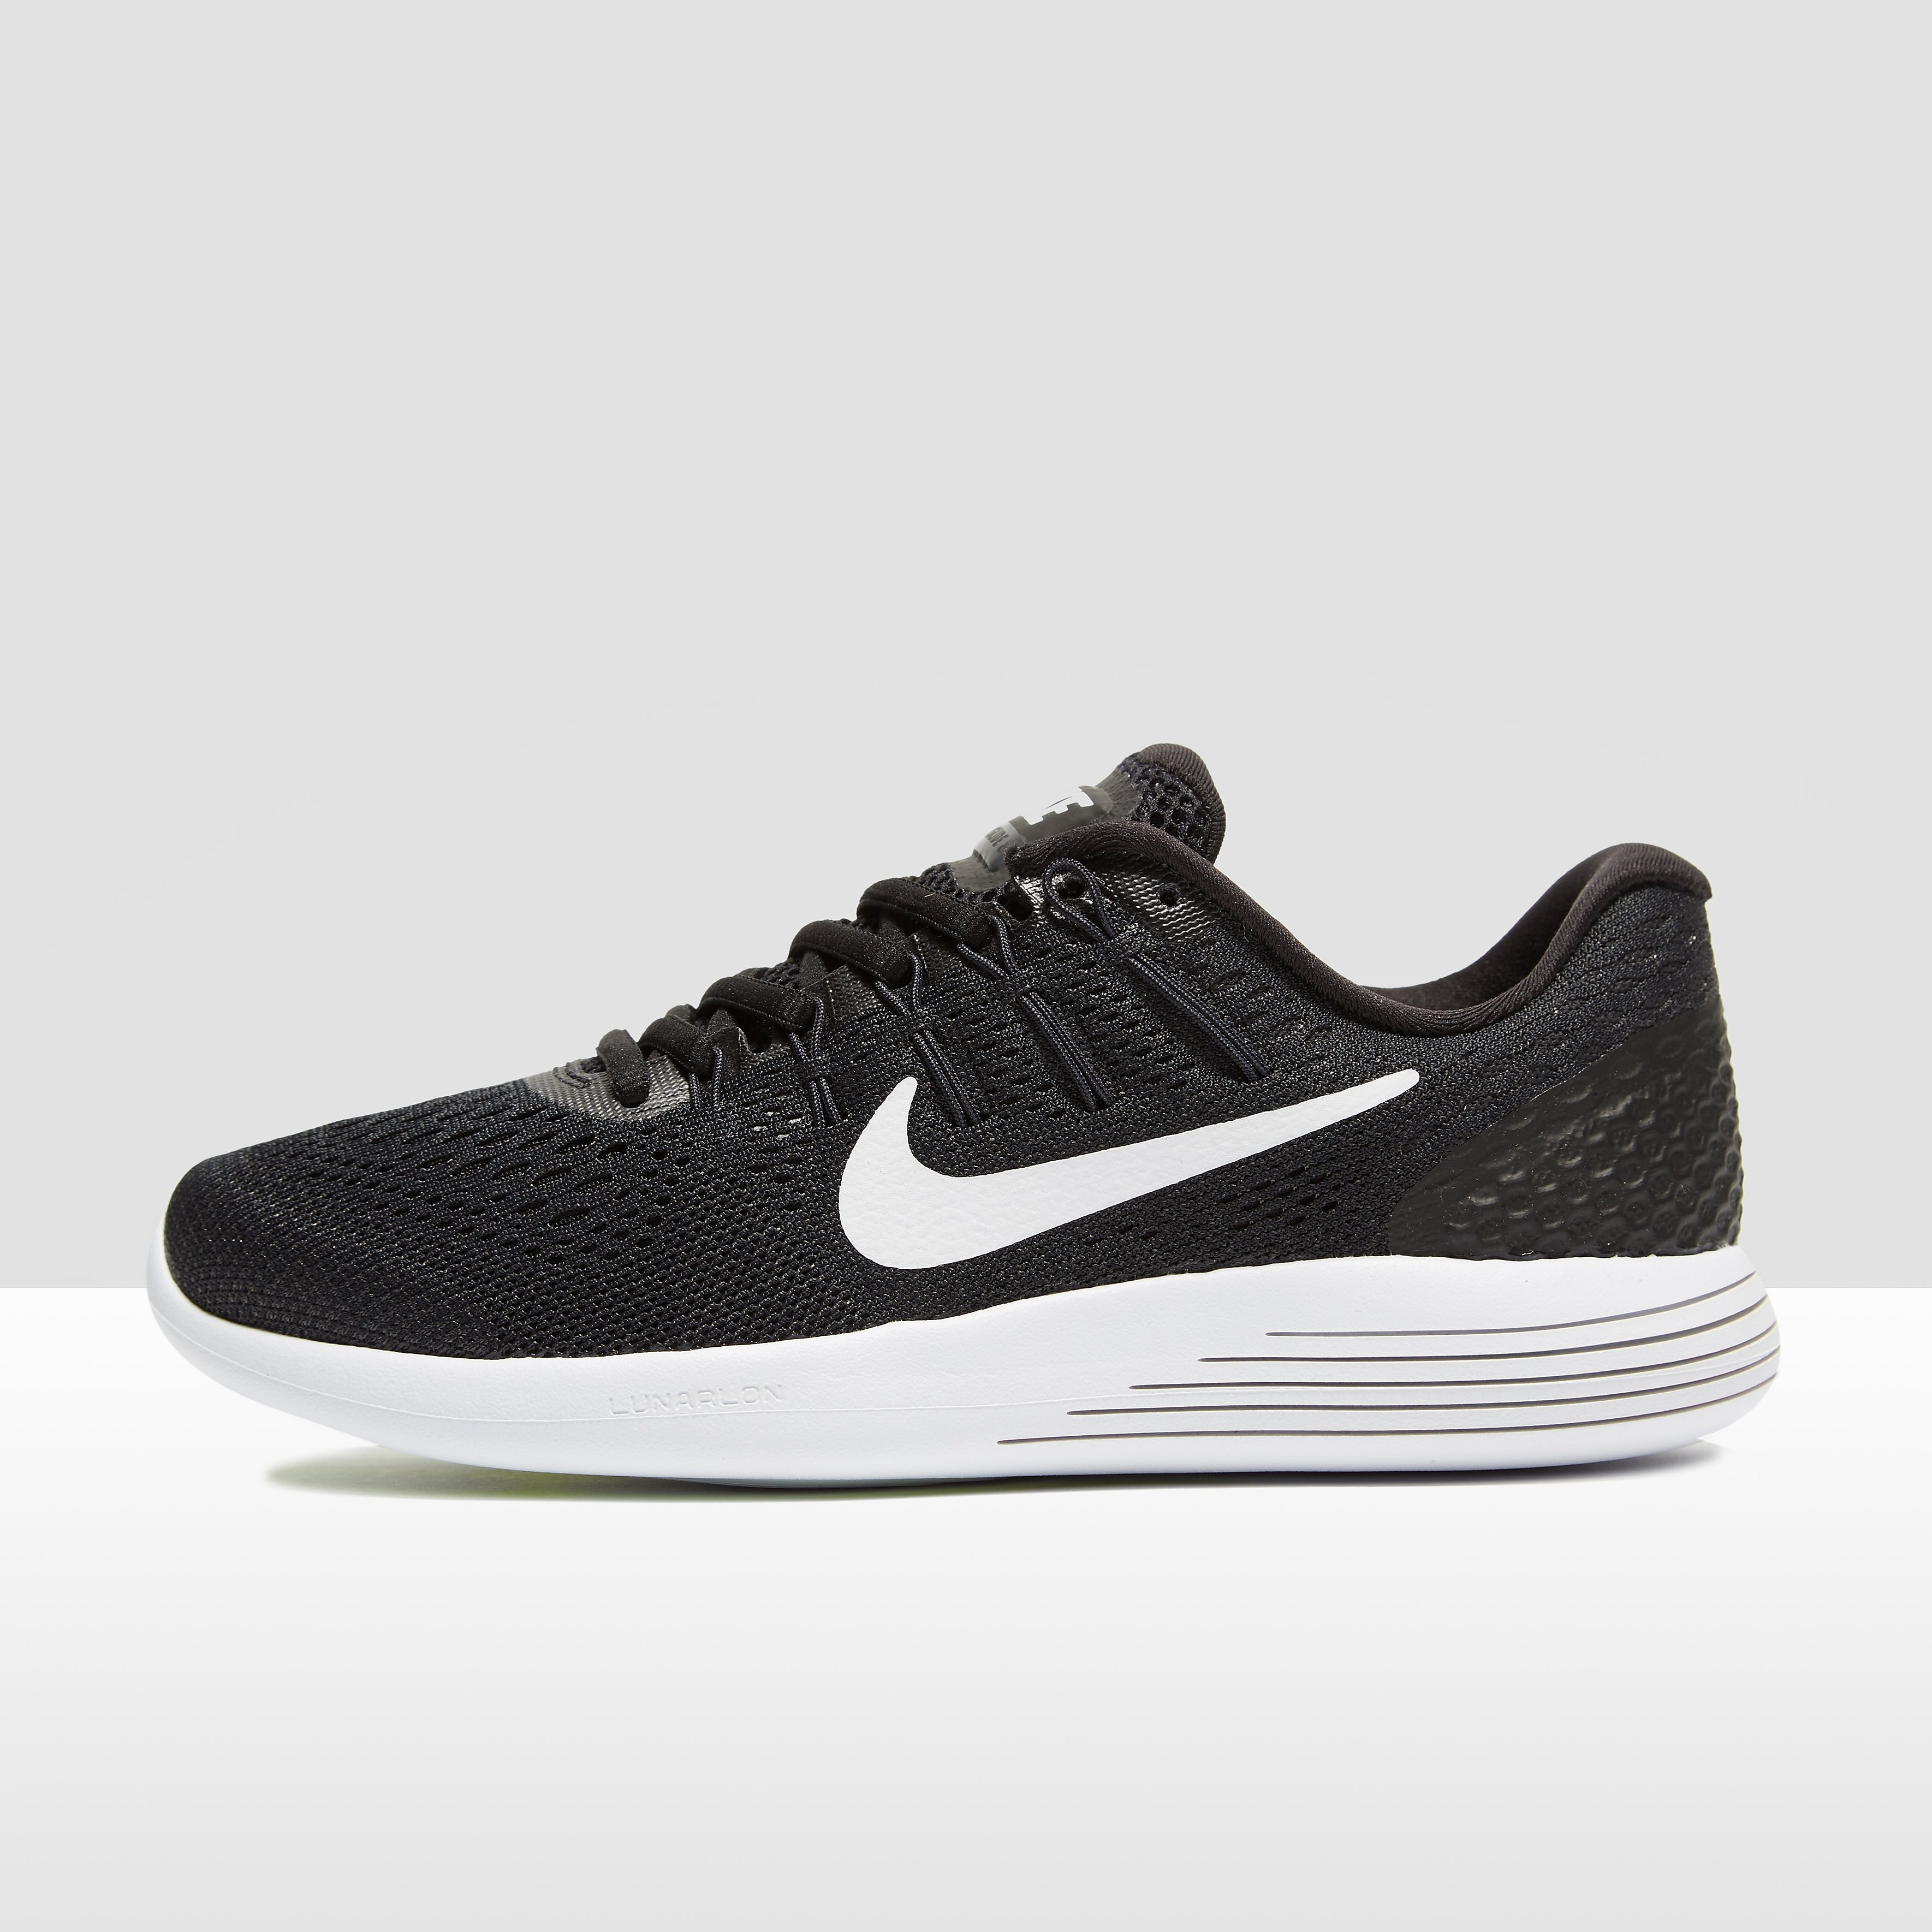 Nike LUNARGLIDE 8 Women's Running Shoes